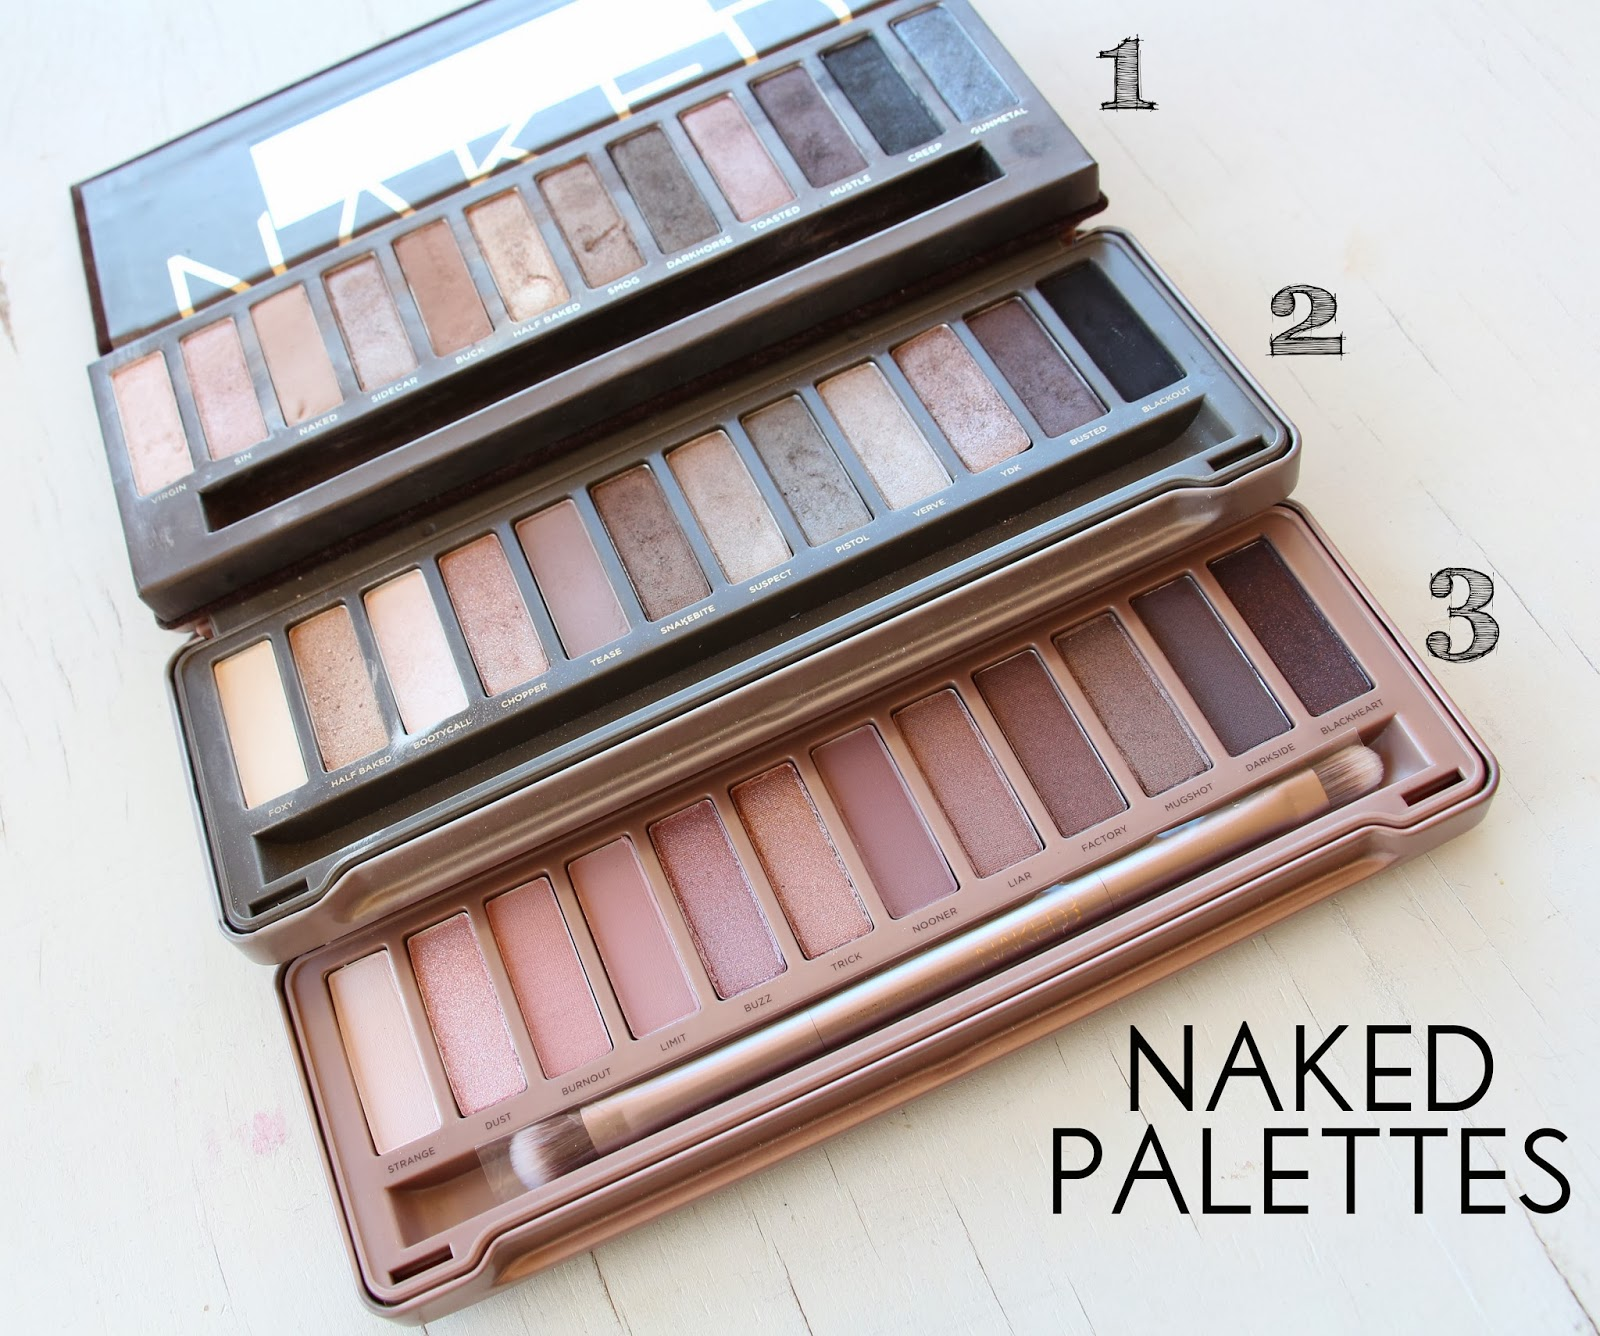 Urban Decay Naked Palettes | eye makeup ideas | Pinterest ...